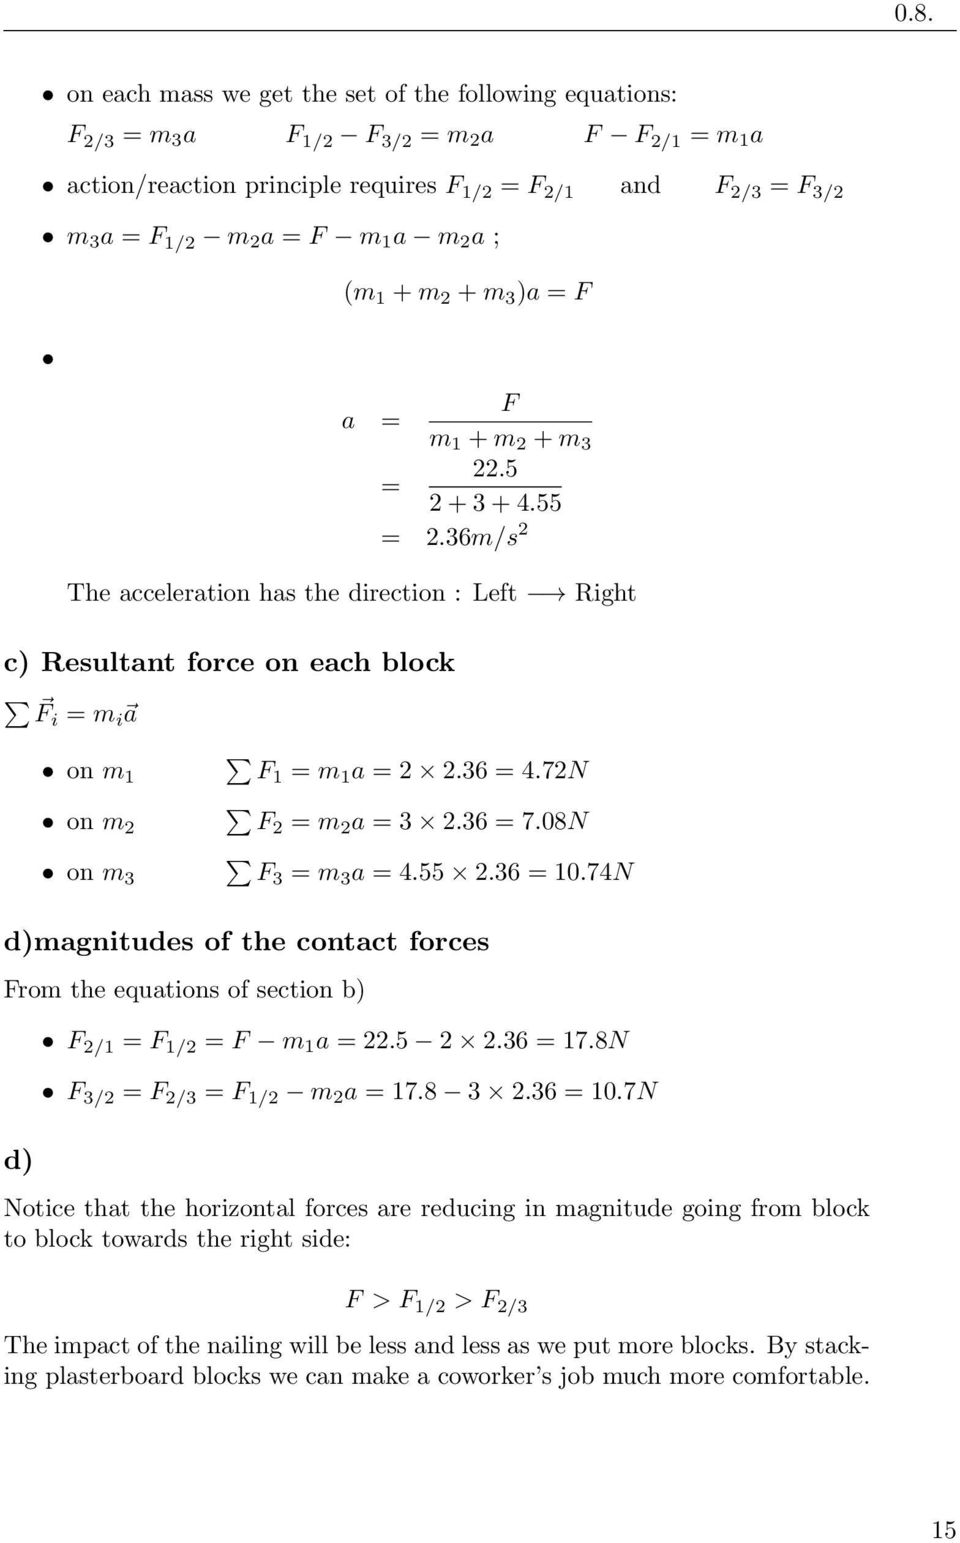 Physics 111 Homework Solution Week 4 Chapter 5 Sec 1 7 February Answer 2 All Forces Are Balanced For A Net Force Of Zero 36m S The Acceleration Has Direction Left Right C Resultant